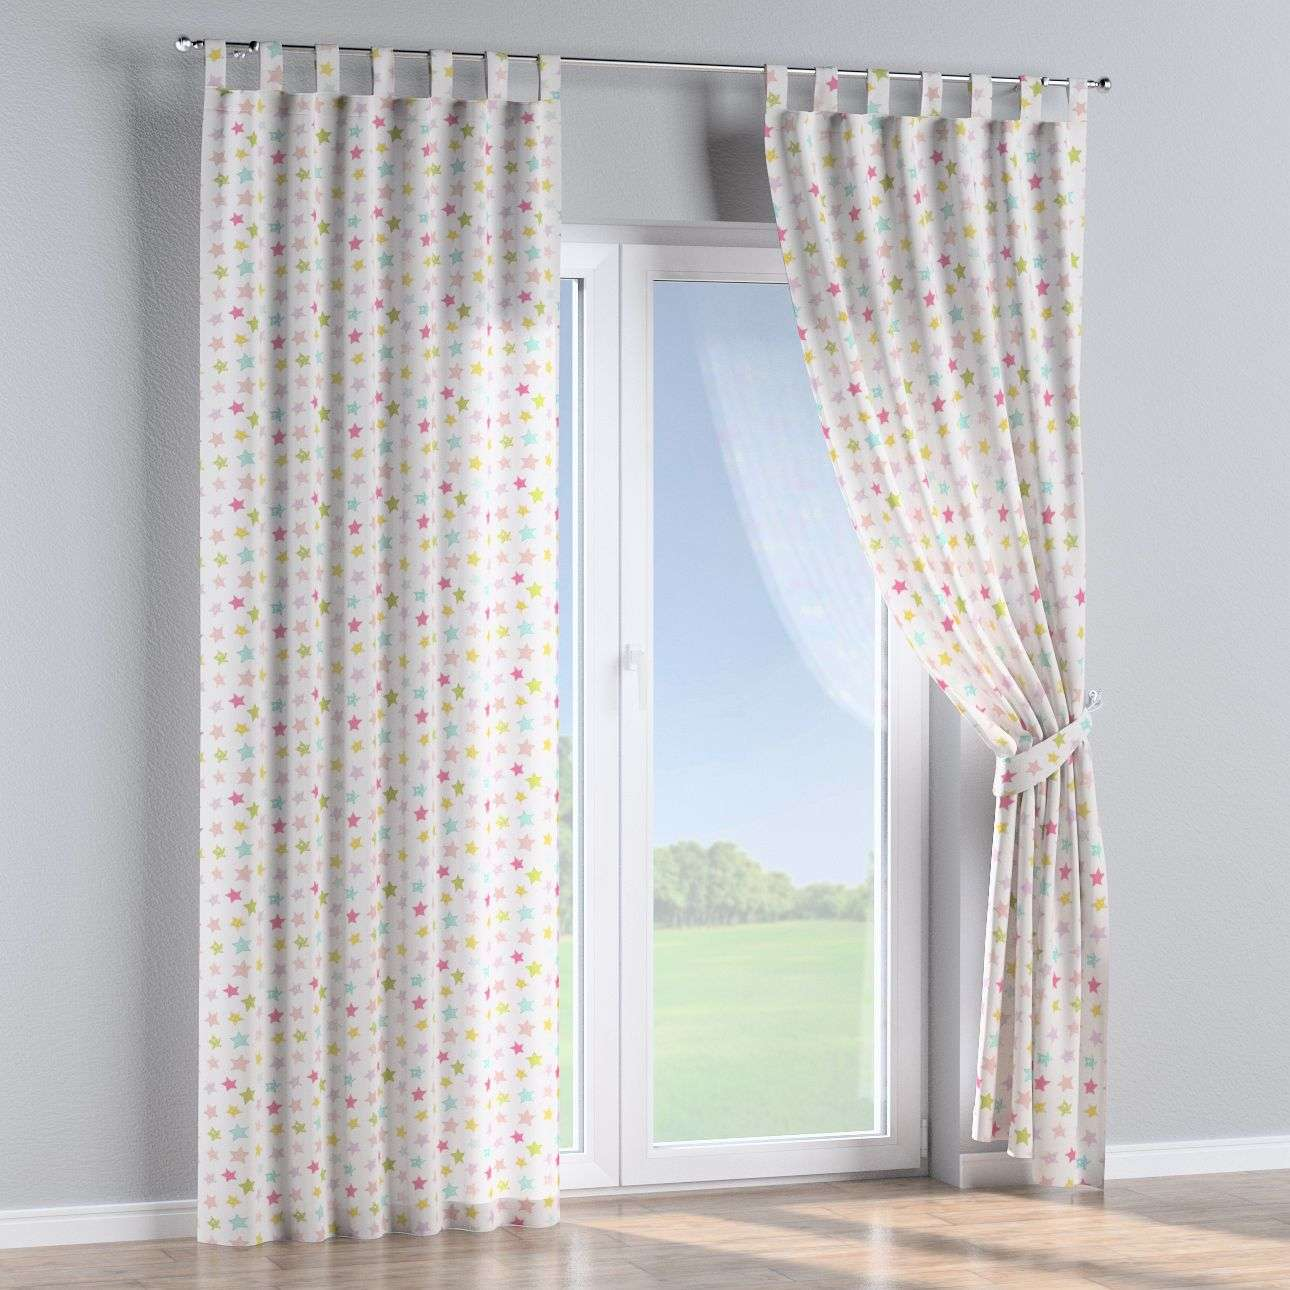 Tab top curtains 130 × 260 cm (51 × 102 inch) in collection Little World, fabric: 141-52